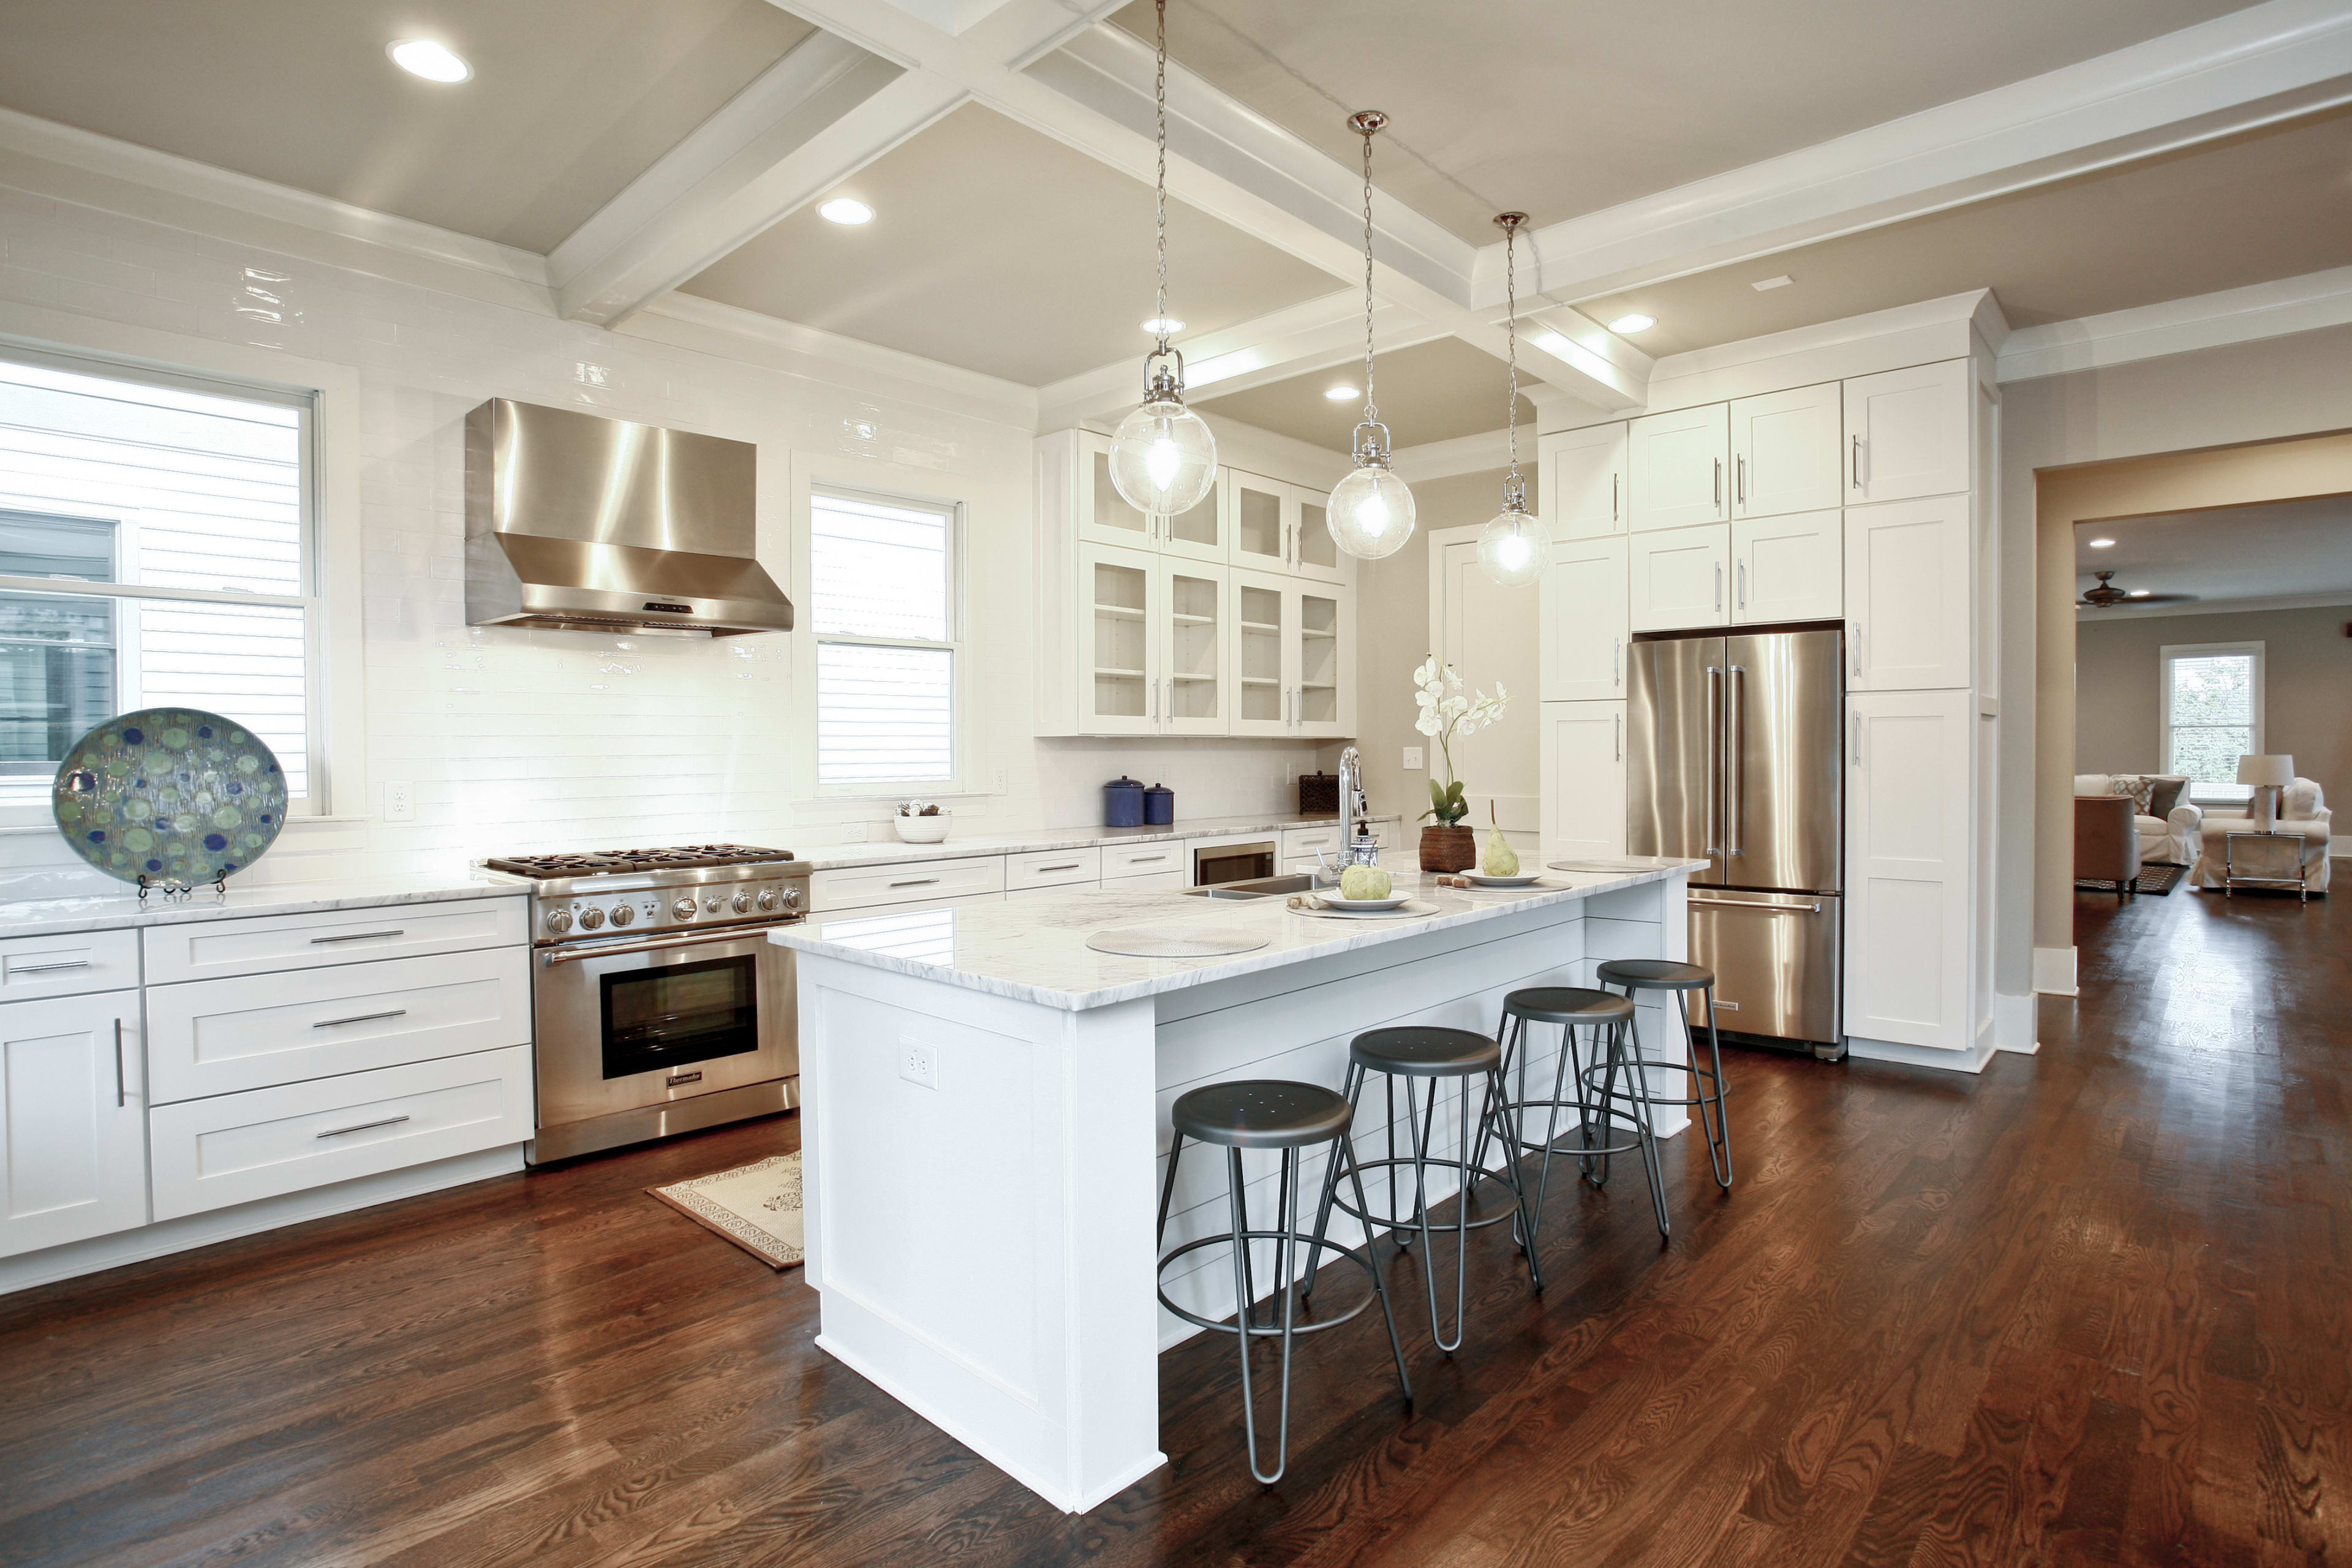 newsome hardwood floors wilmington nc of real estate throughout appealing houses turn into homes